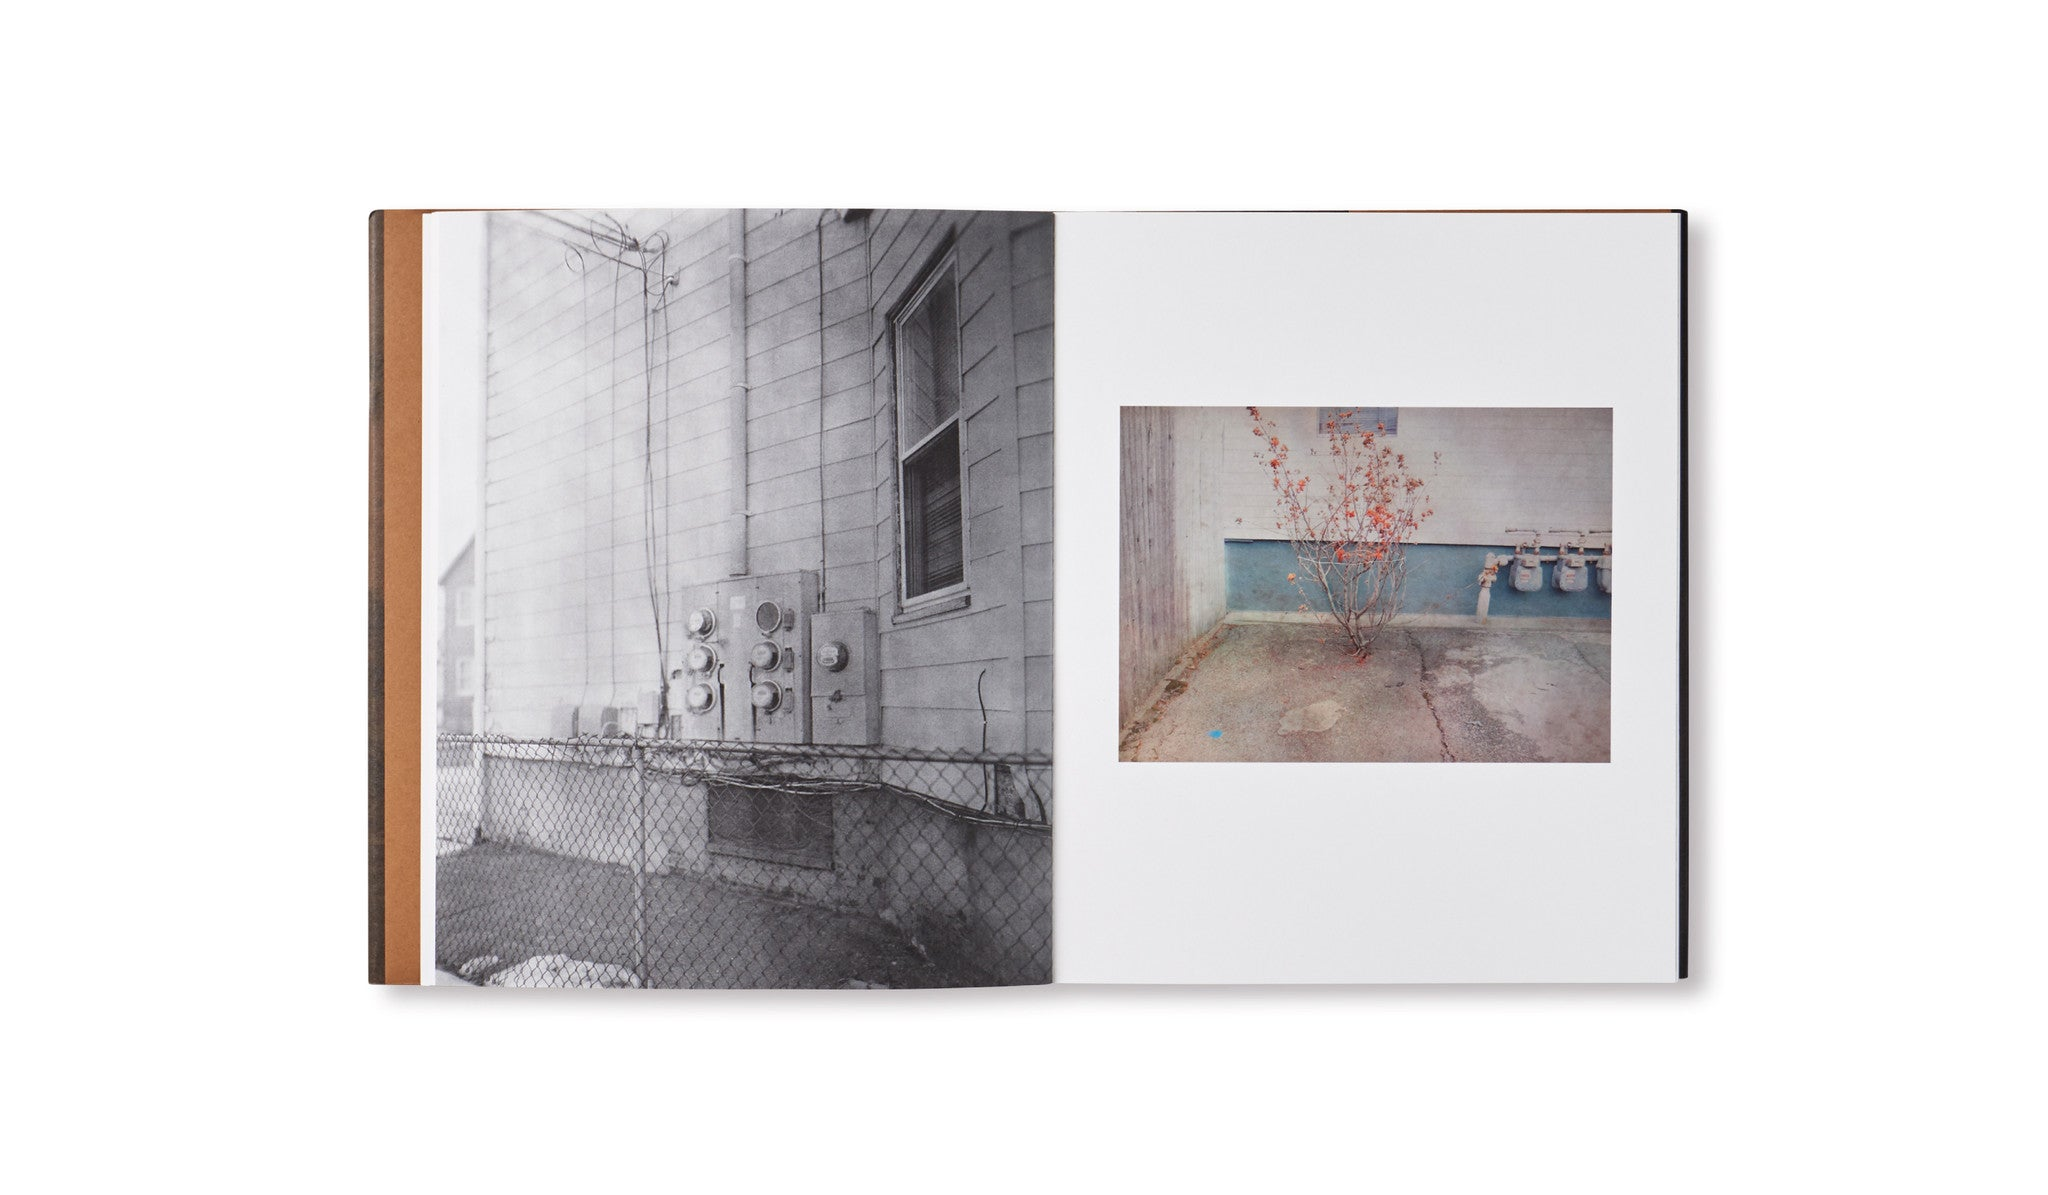 SUBSCRIPTION SERIES #4 by Christian Patterson, Alessandra Sanguinetti, Raymond Meeks and Wolfgang Tillmans